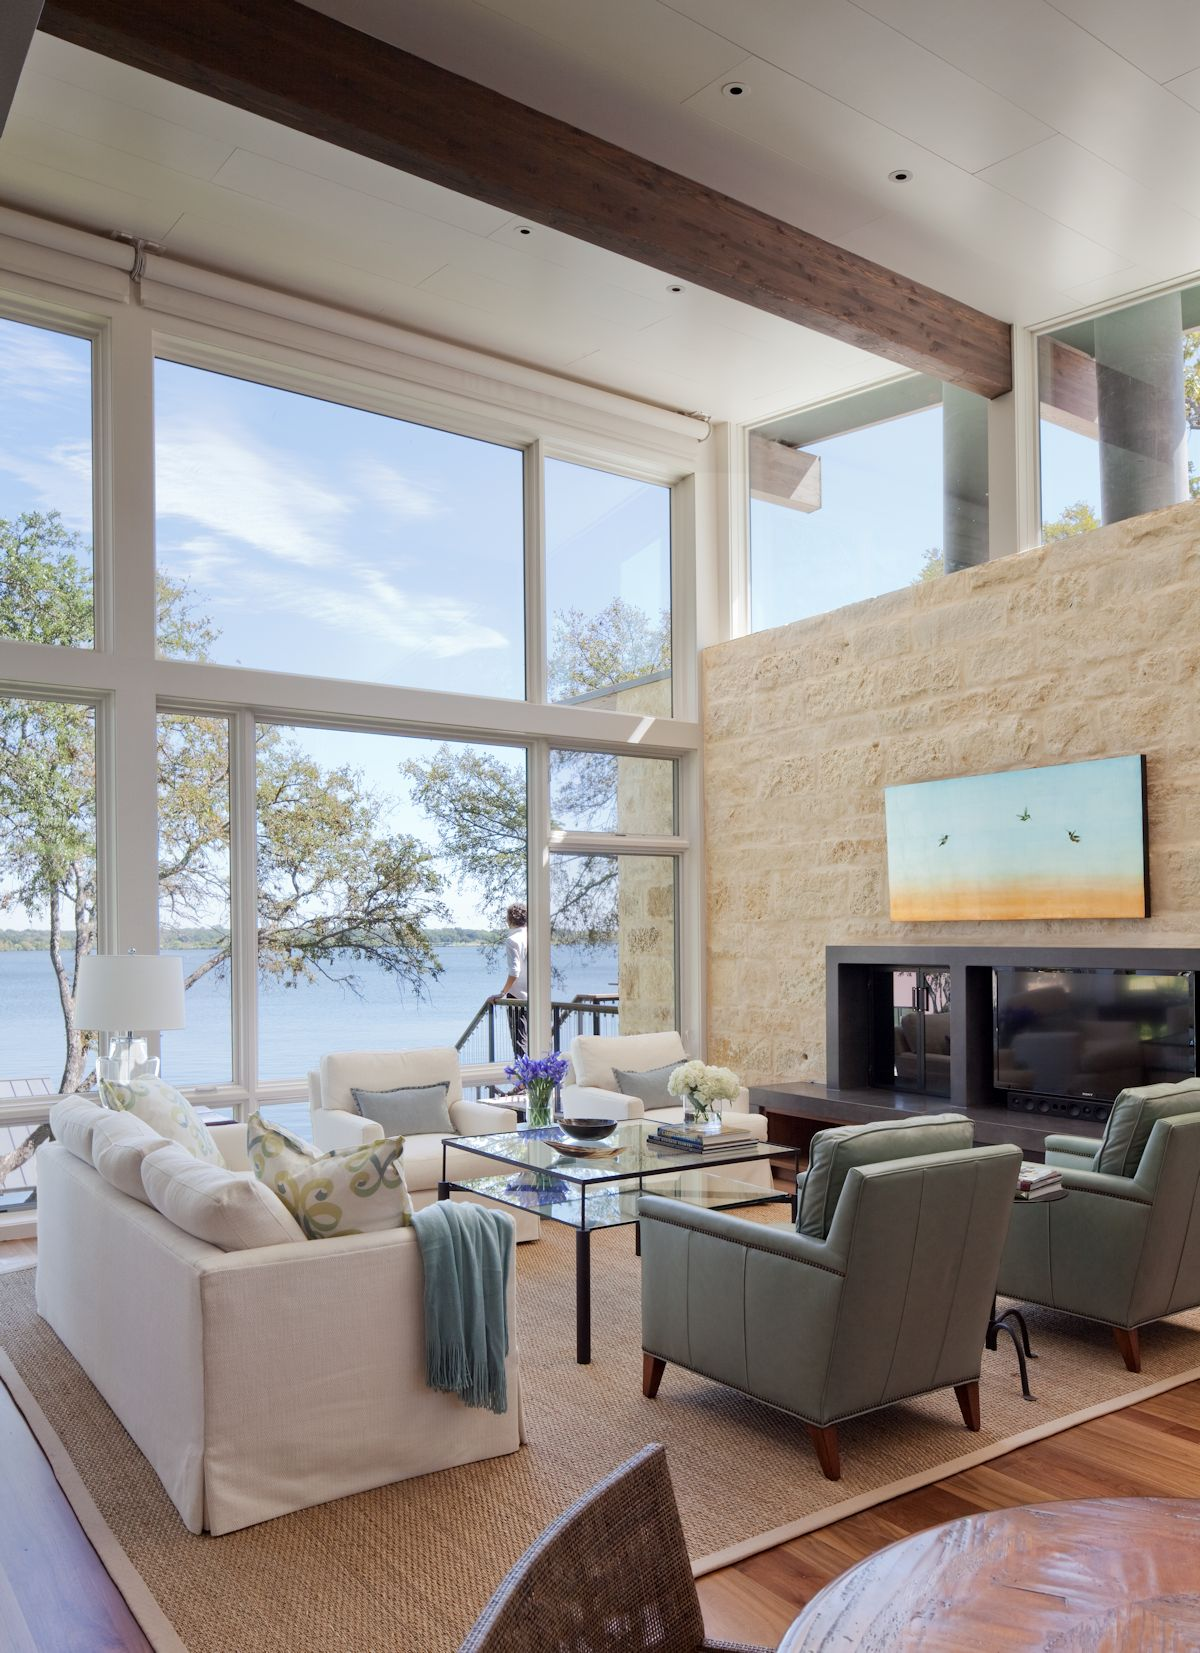 Floor-to-Ceiling Windows, Sofas, Fireplace, Lake Views, Weekend Retreat in Marble Falls, Texas